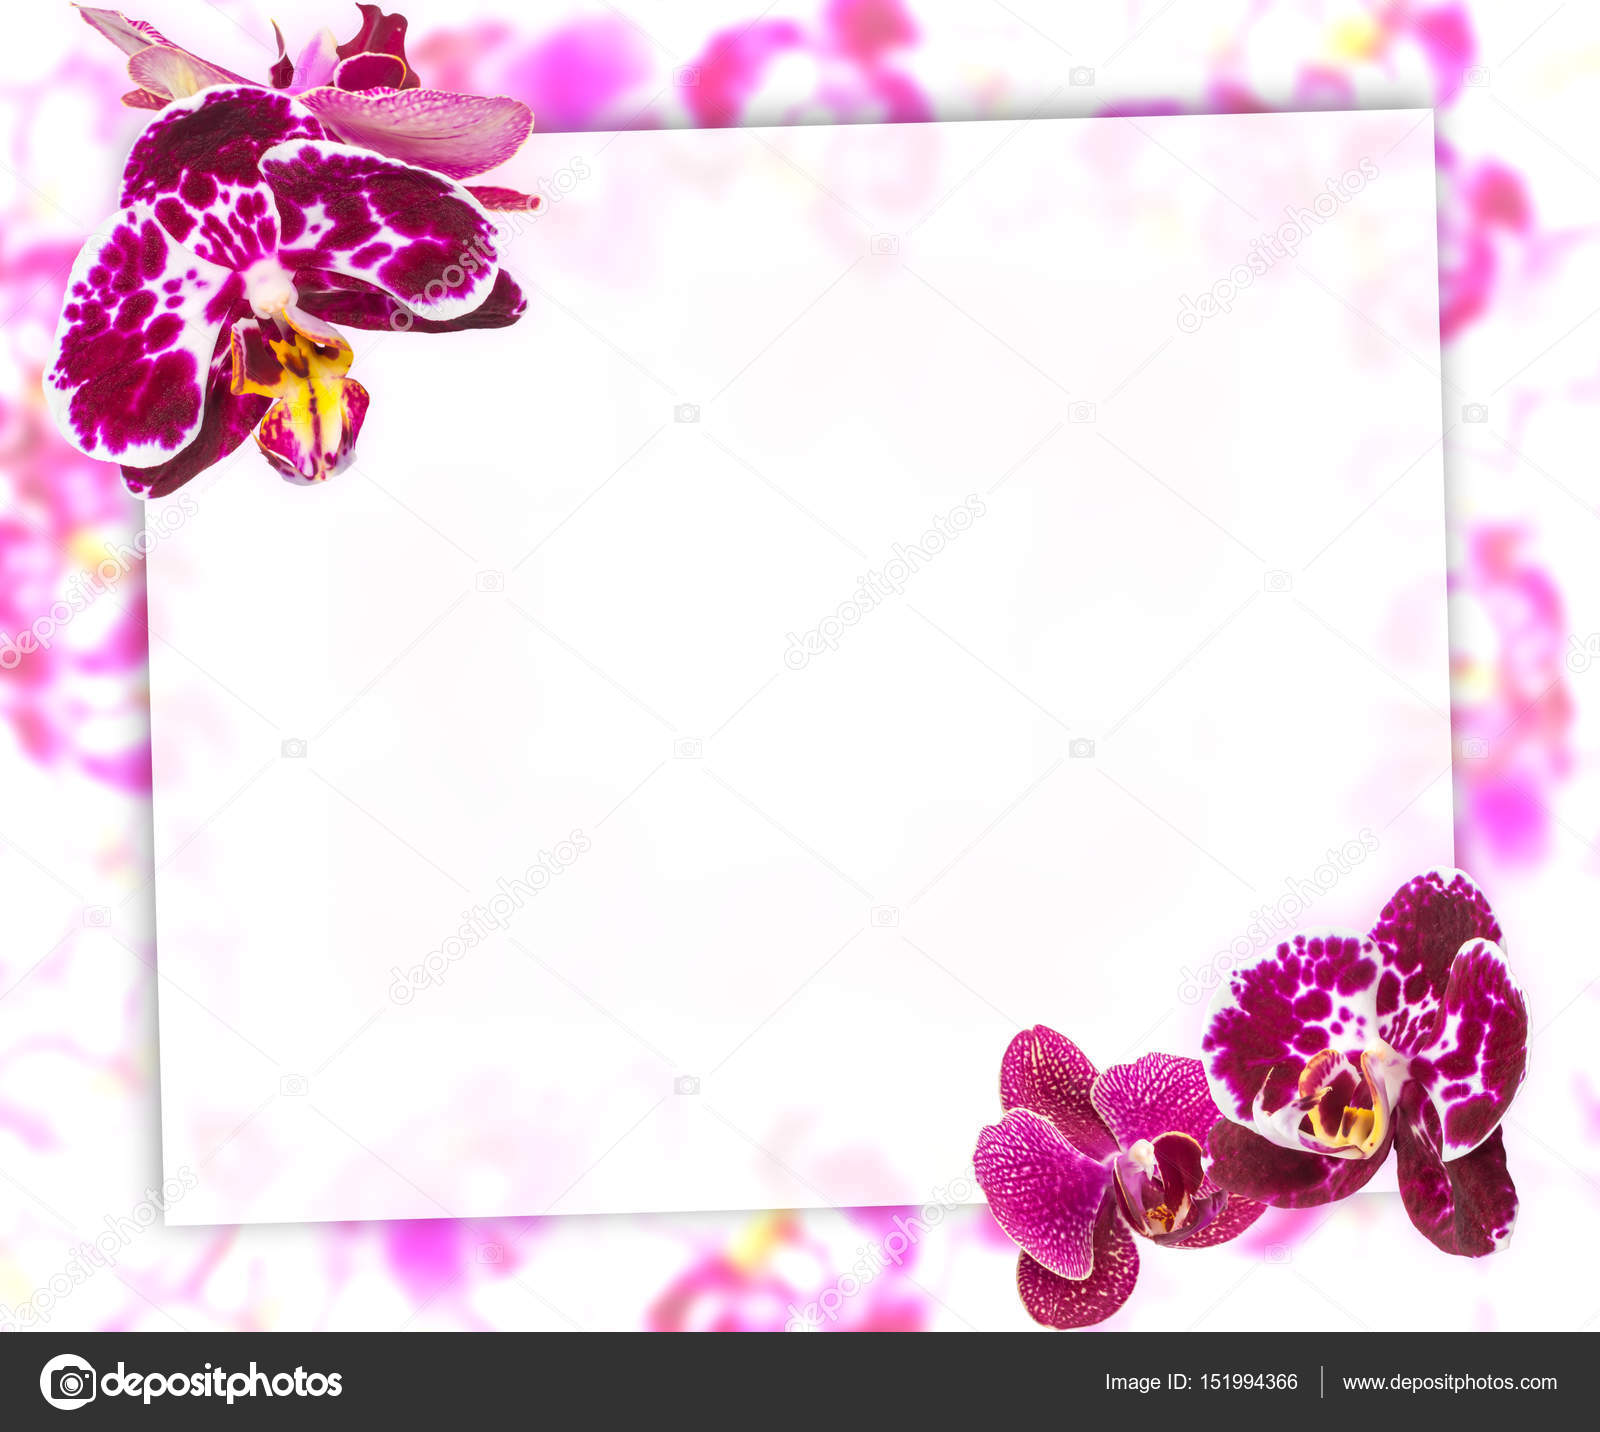 Beautiful pink orchids border for greeting card or lovely flower beautiful pink and violet orchids border for greeting card lovely flower frame with blank space for text photo by oksana6299956 kristyandbryce Choice Image